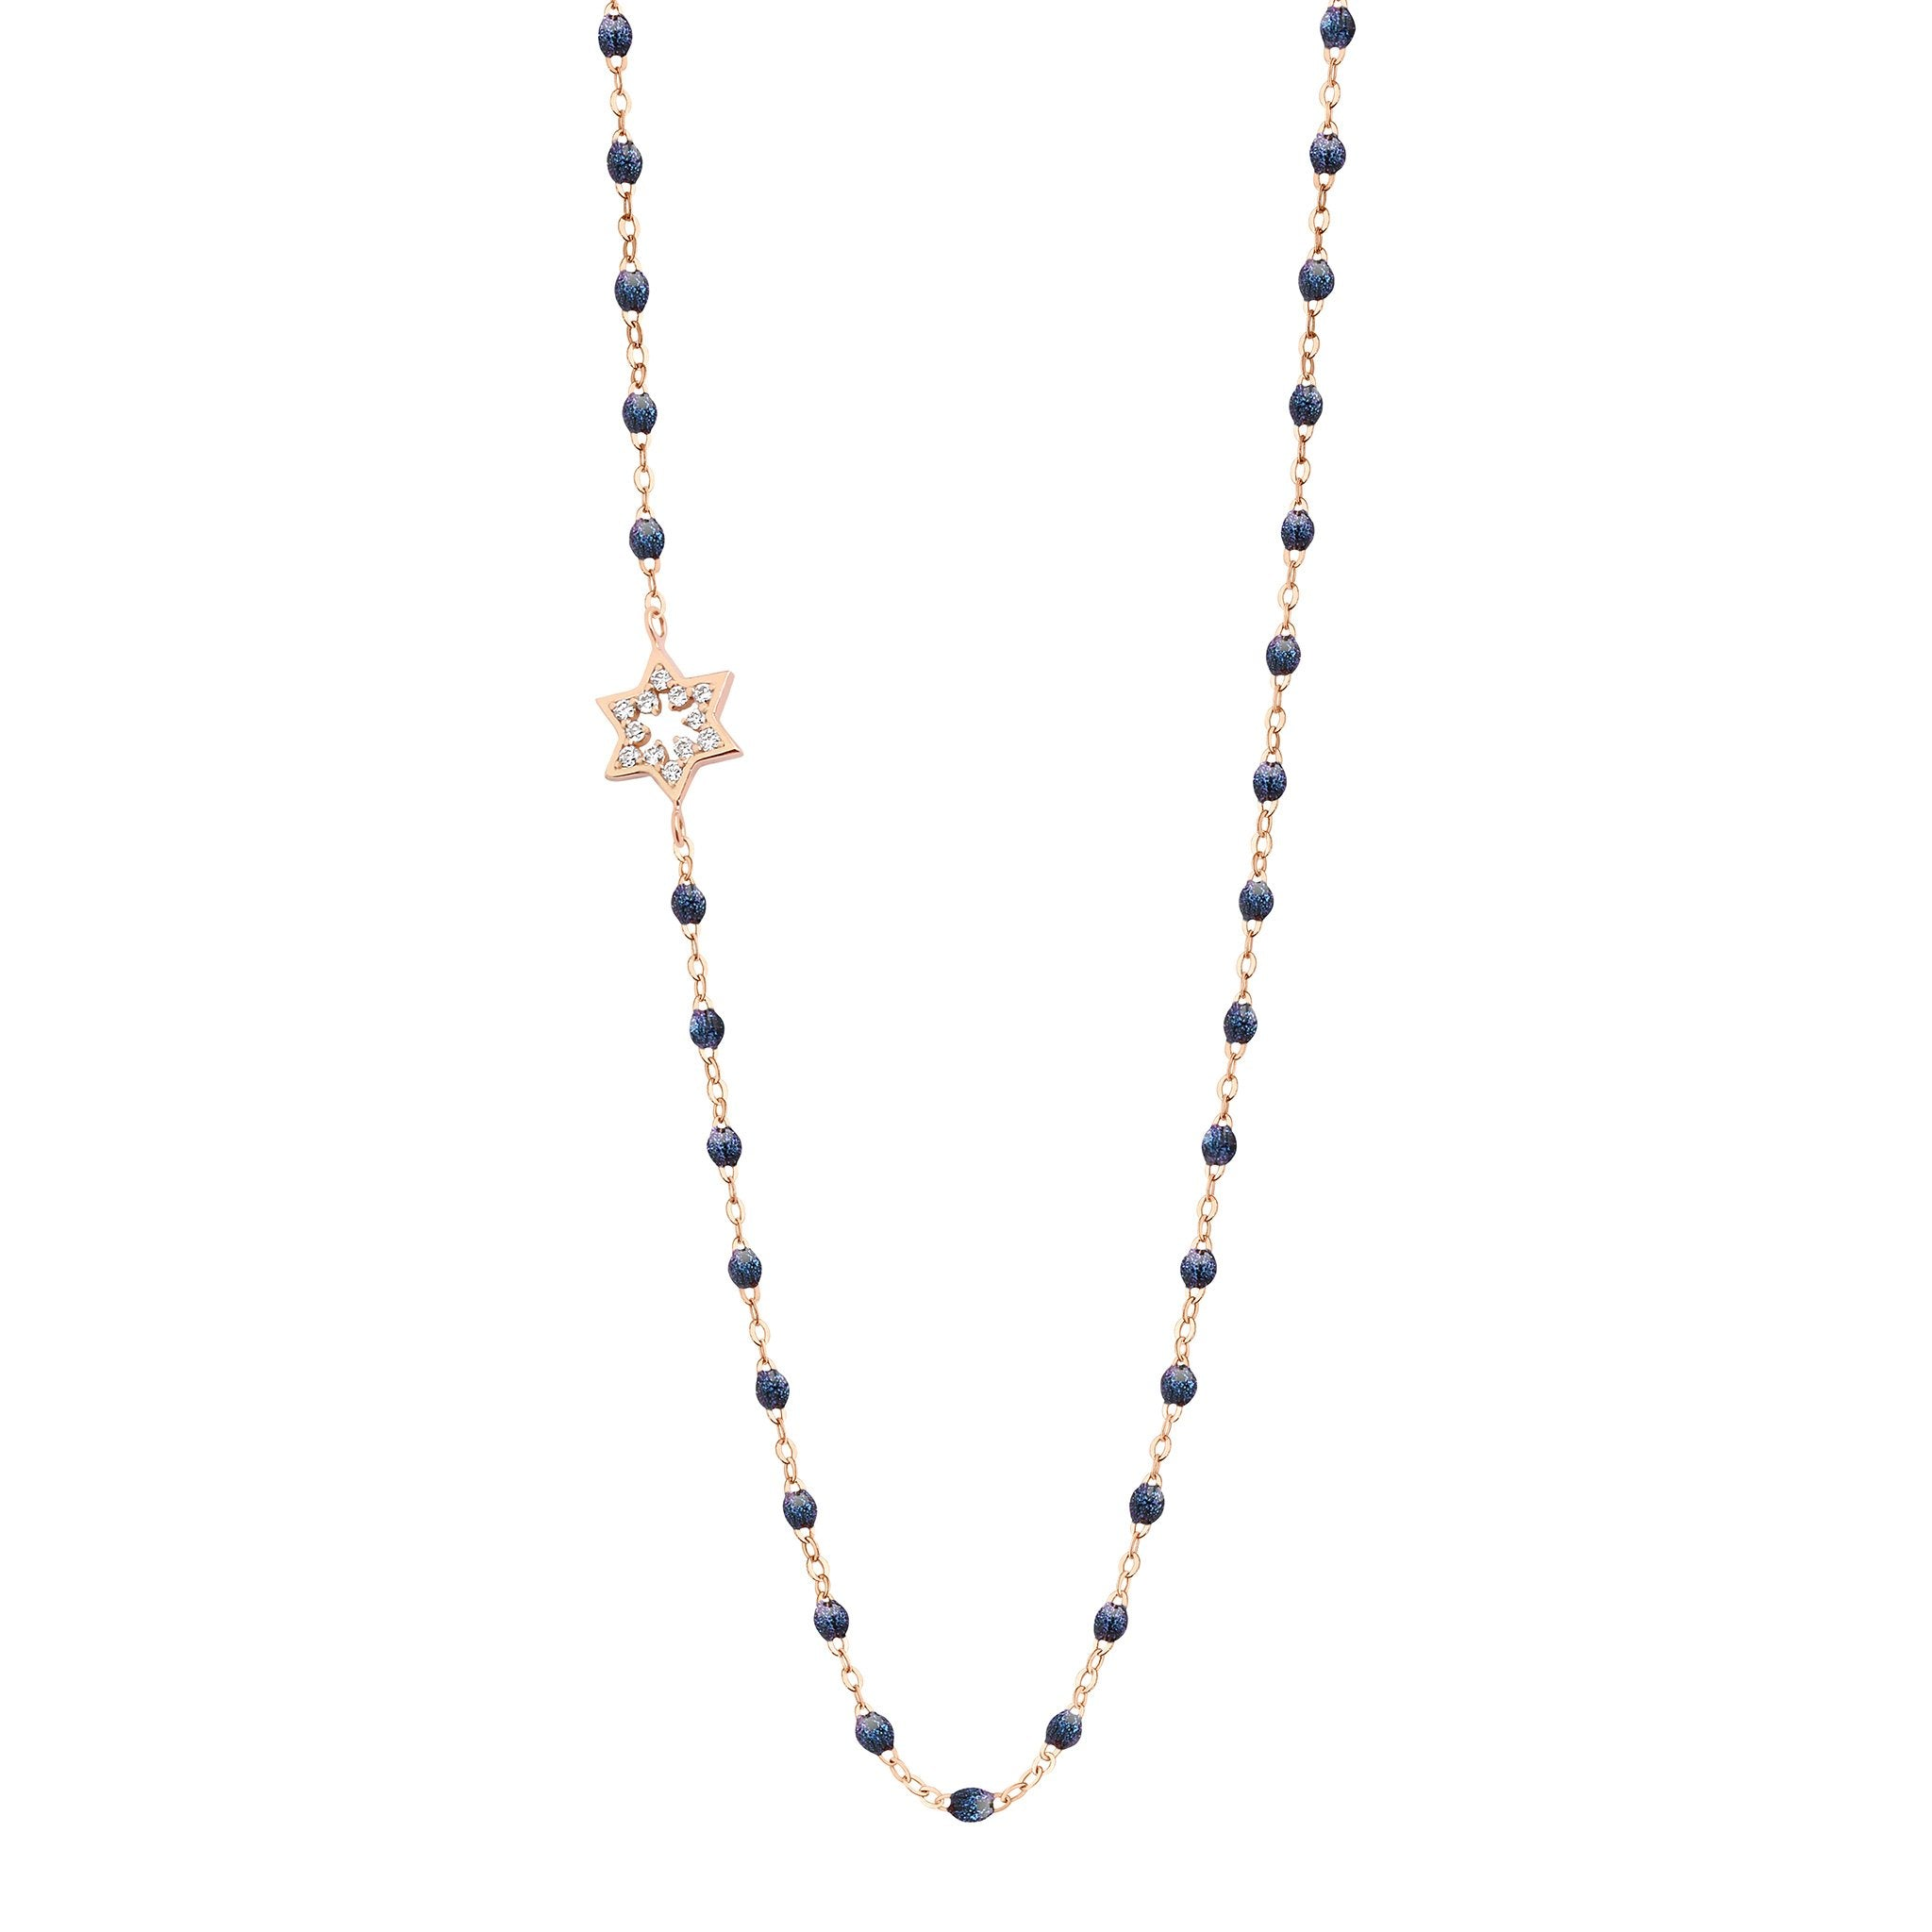 Gigi Clozeau - Star of David Classic Gigi Midnight diamonds necklace, Rose Gold, 16.5""